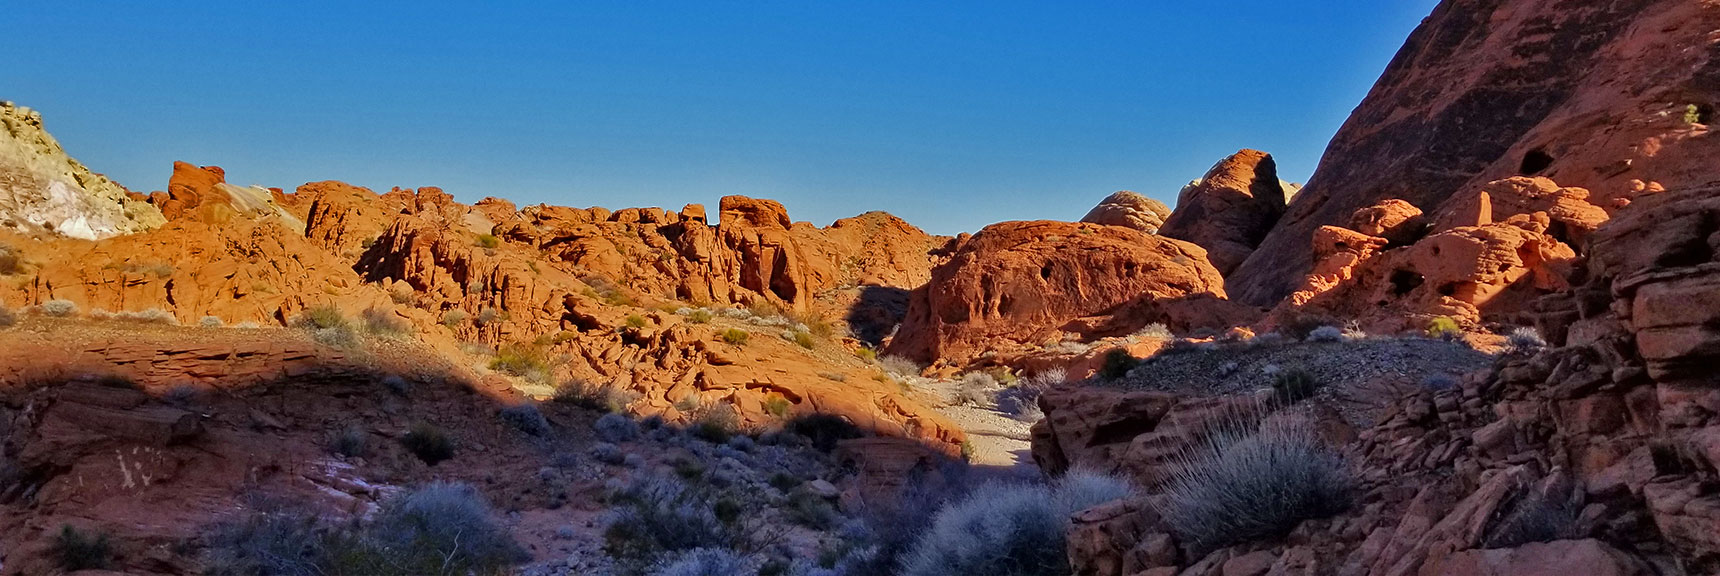 Descending the Northern Canyon Wash Toward White Domes Loop on Prospect Trail in Valley of Fire State Park, Nevada